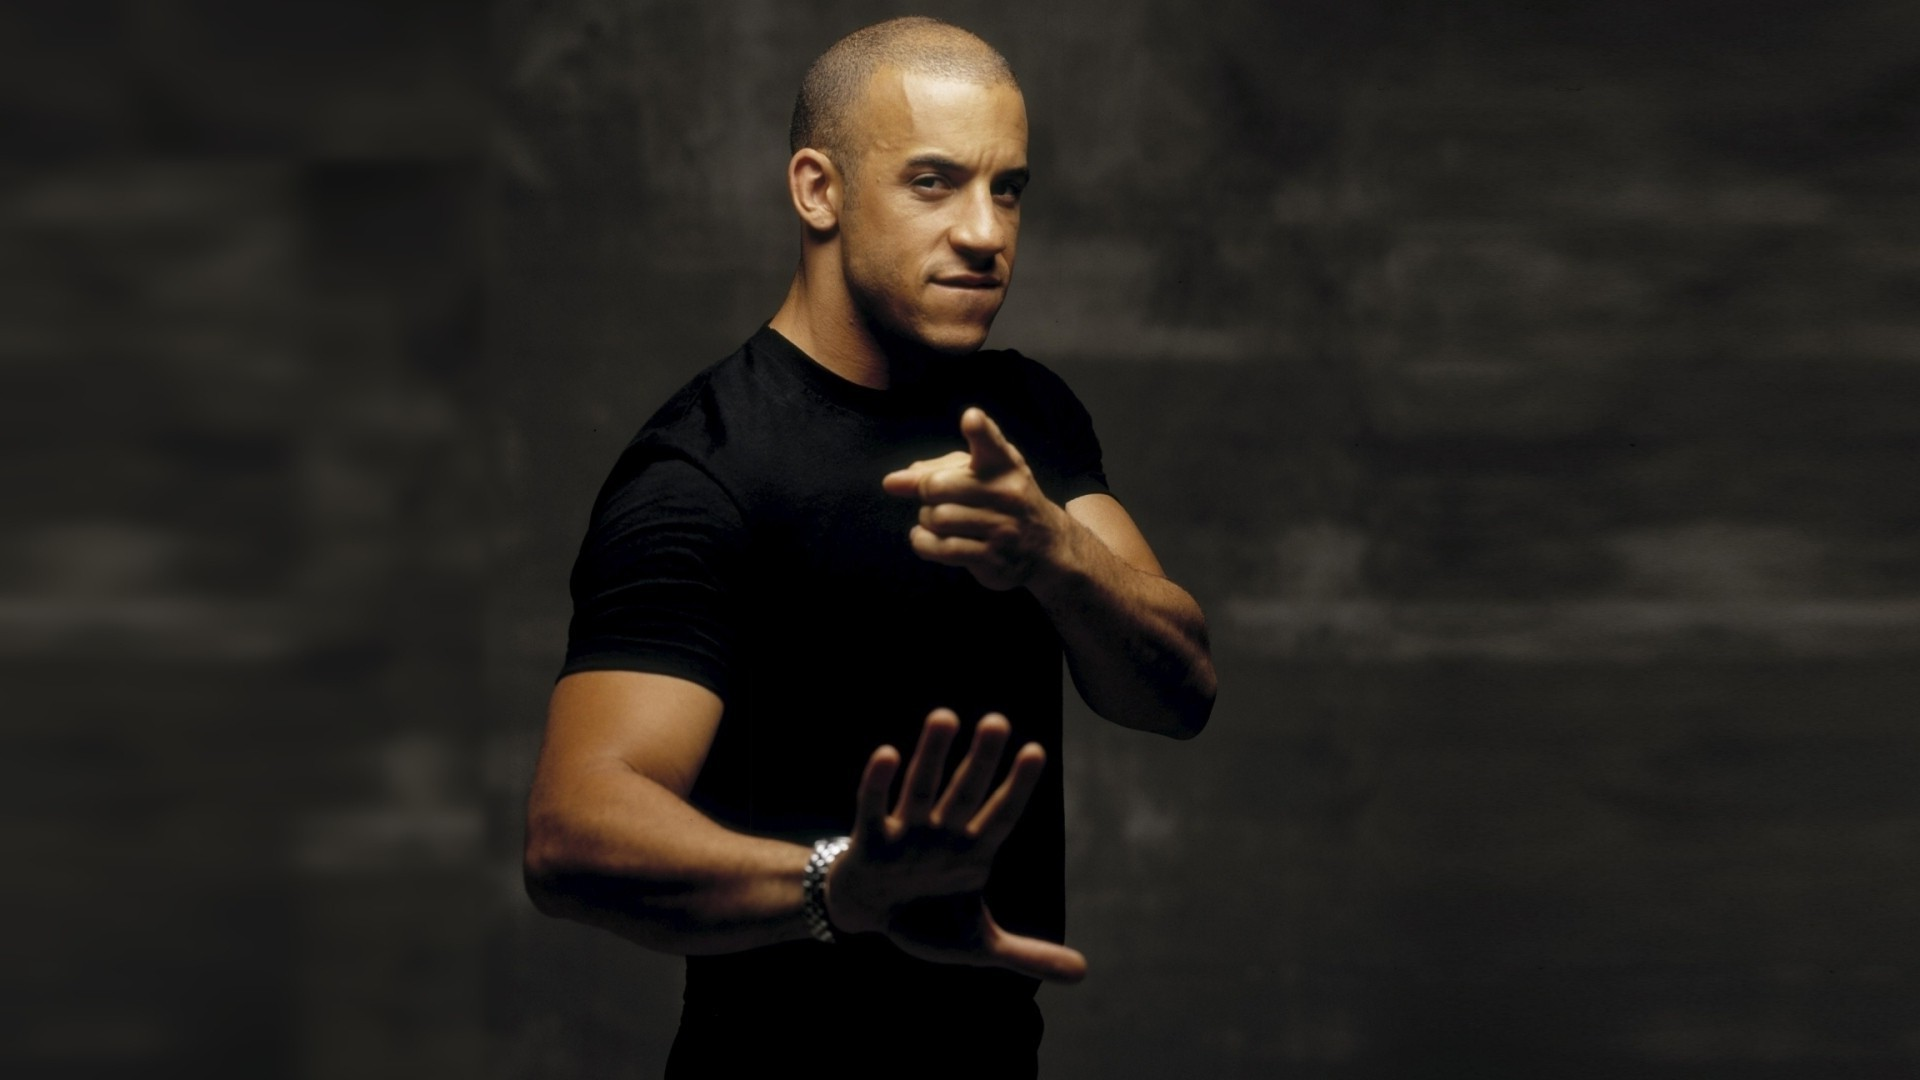 Vin Diesel photos, pictures, stills, images, wallpapers, gallery 1920x1080